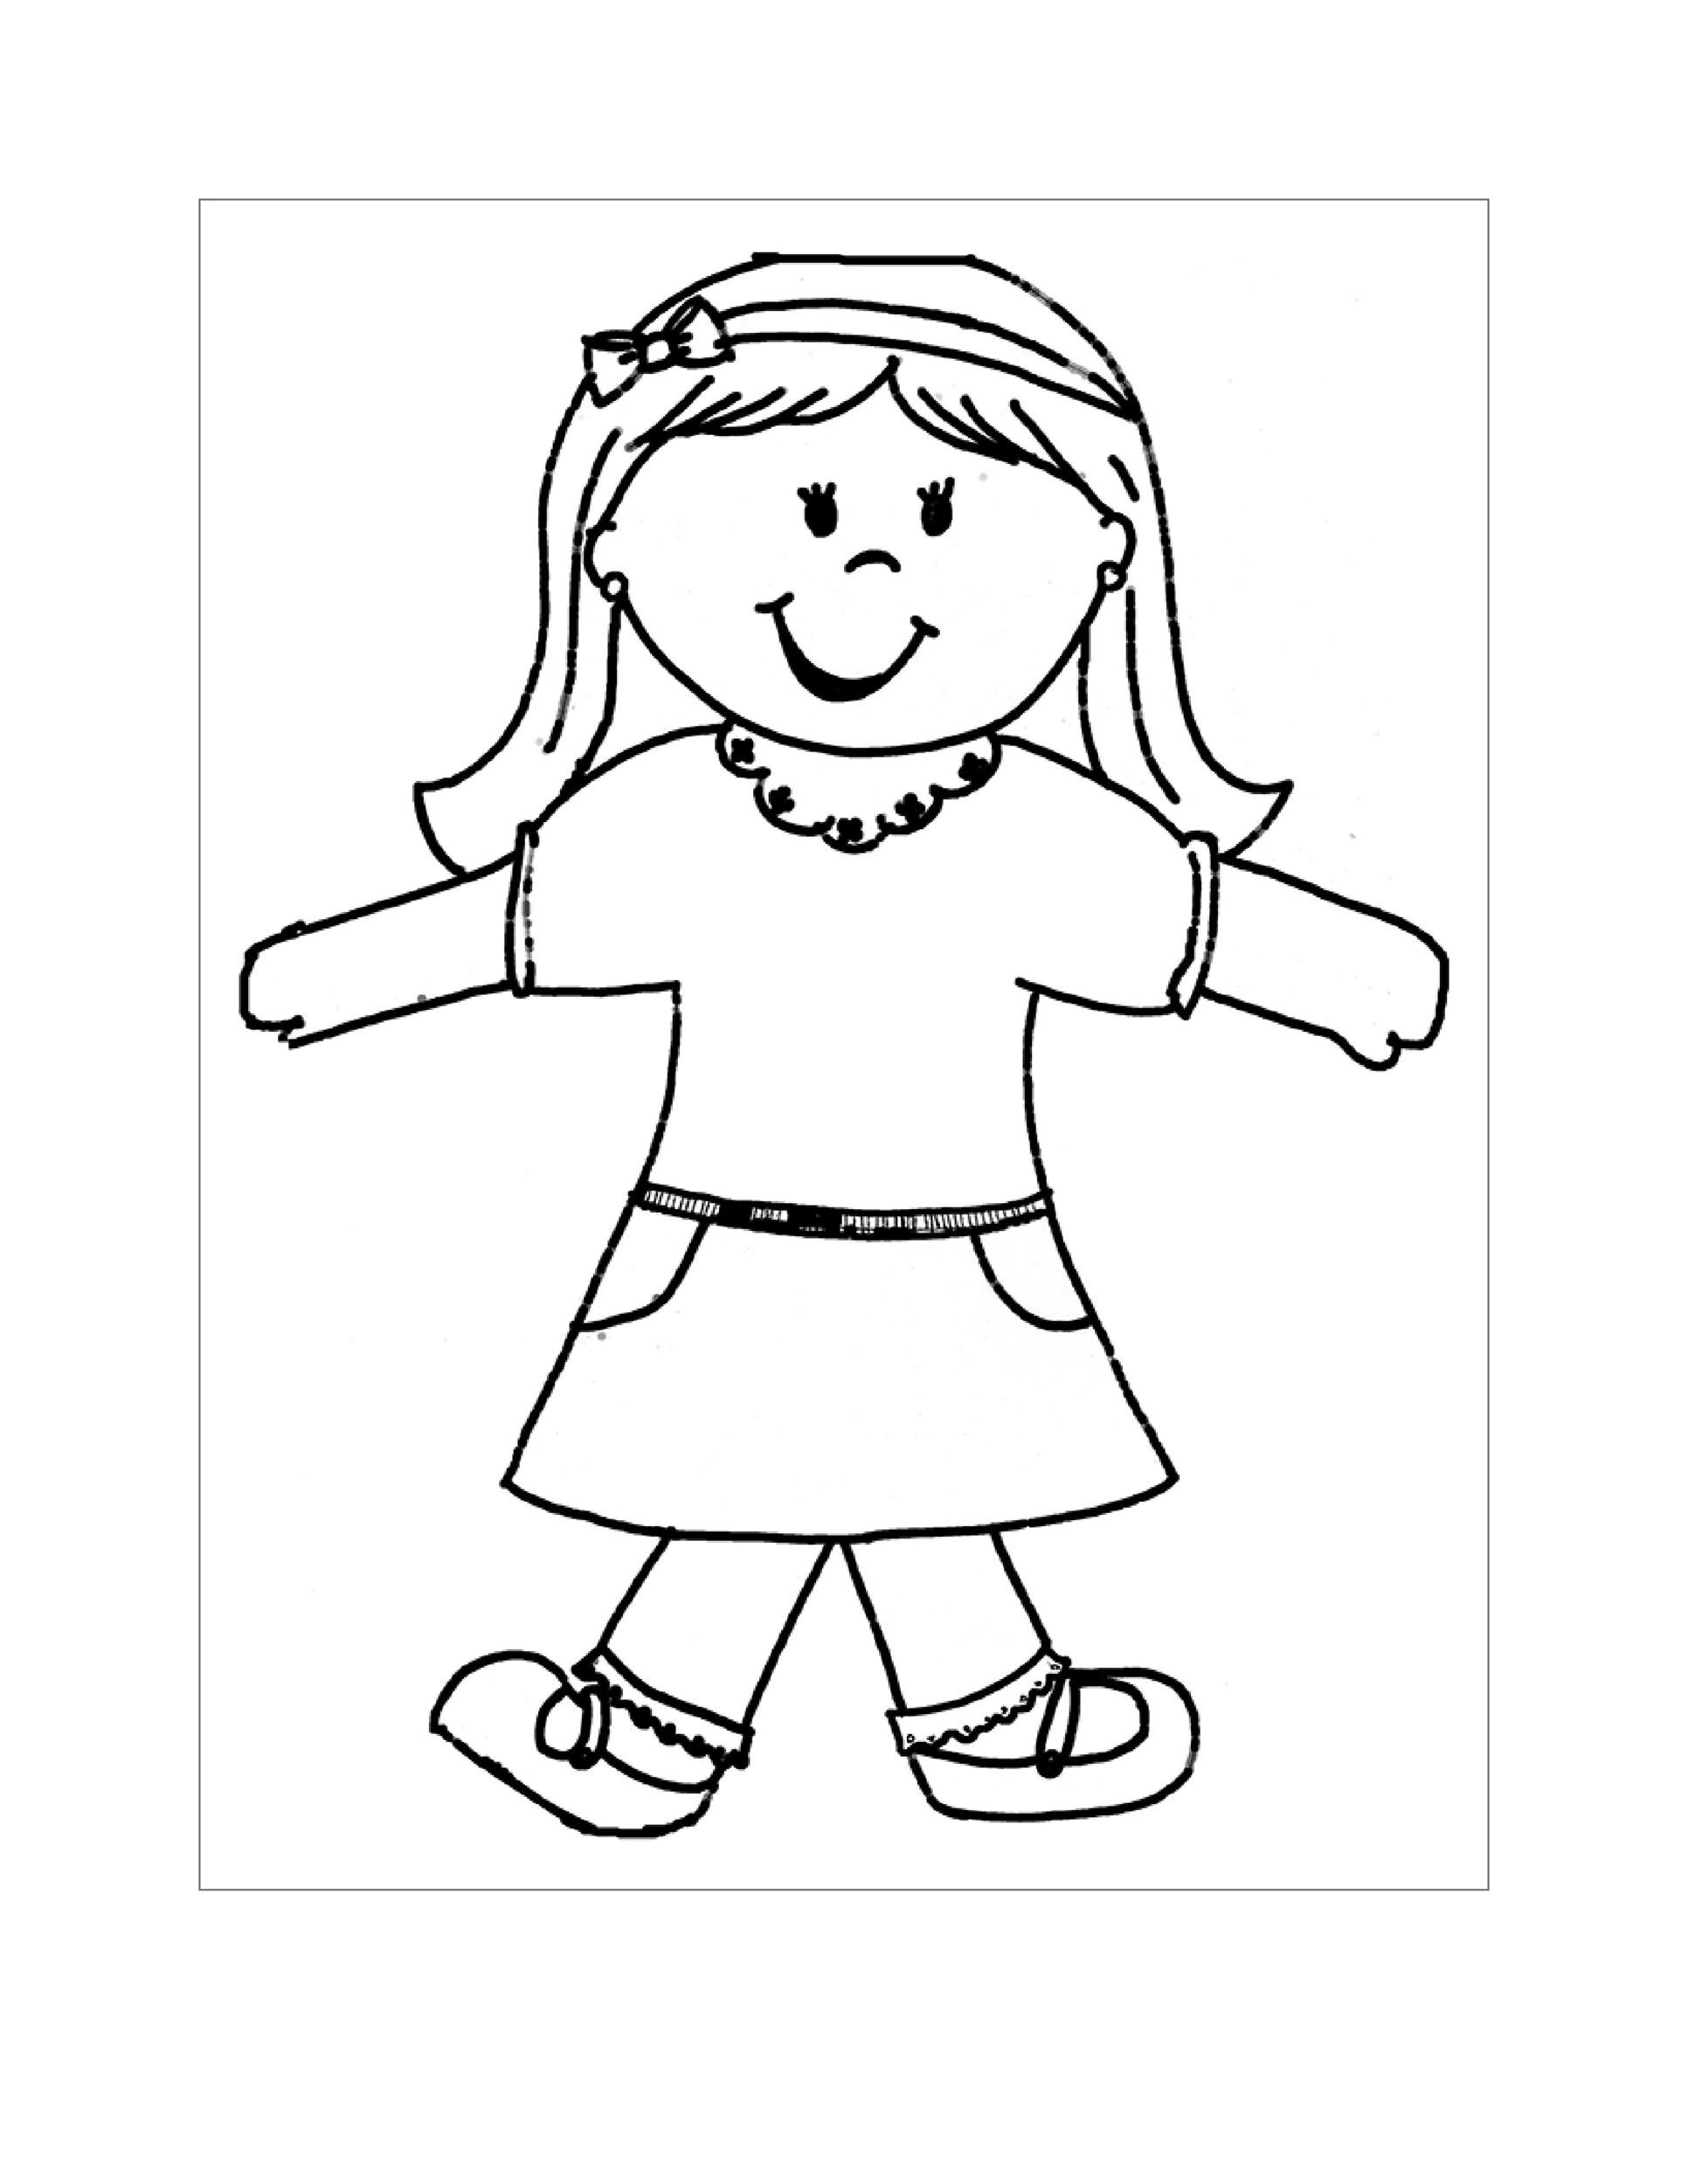 37 Flat Stanley Templates & Letter Examples ᐅ Template Lab